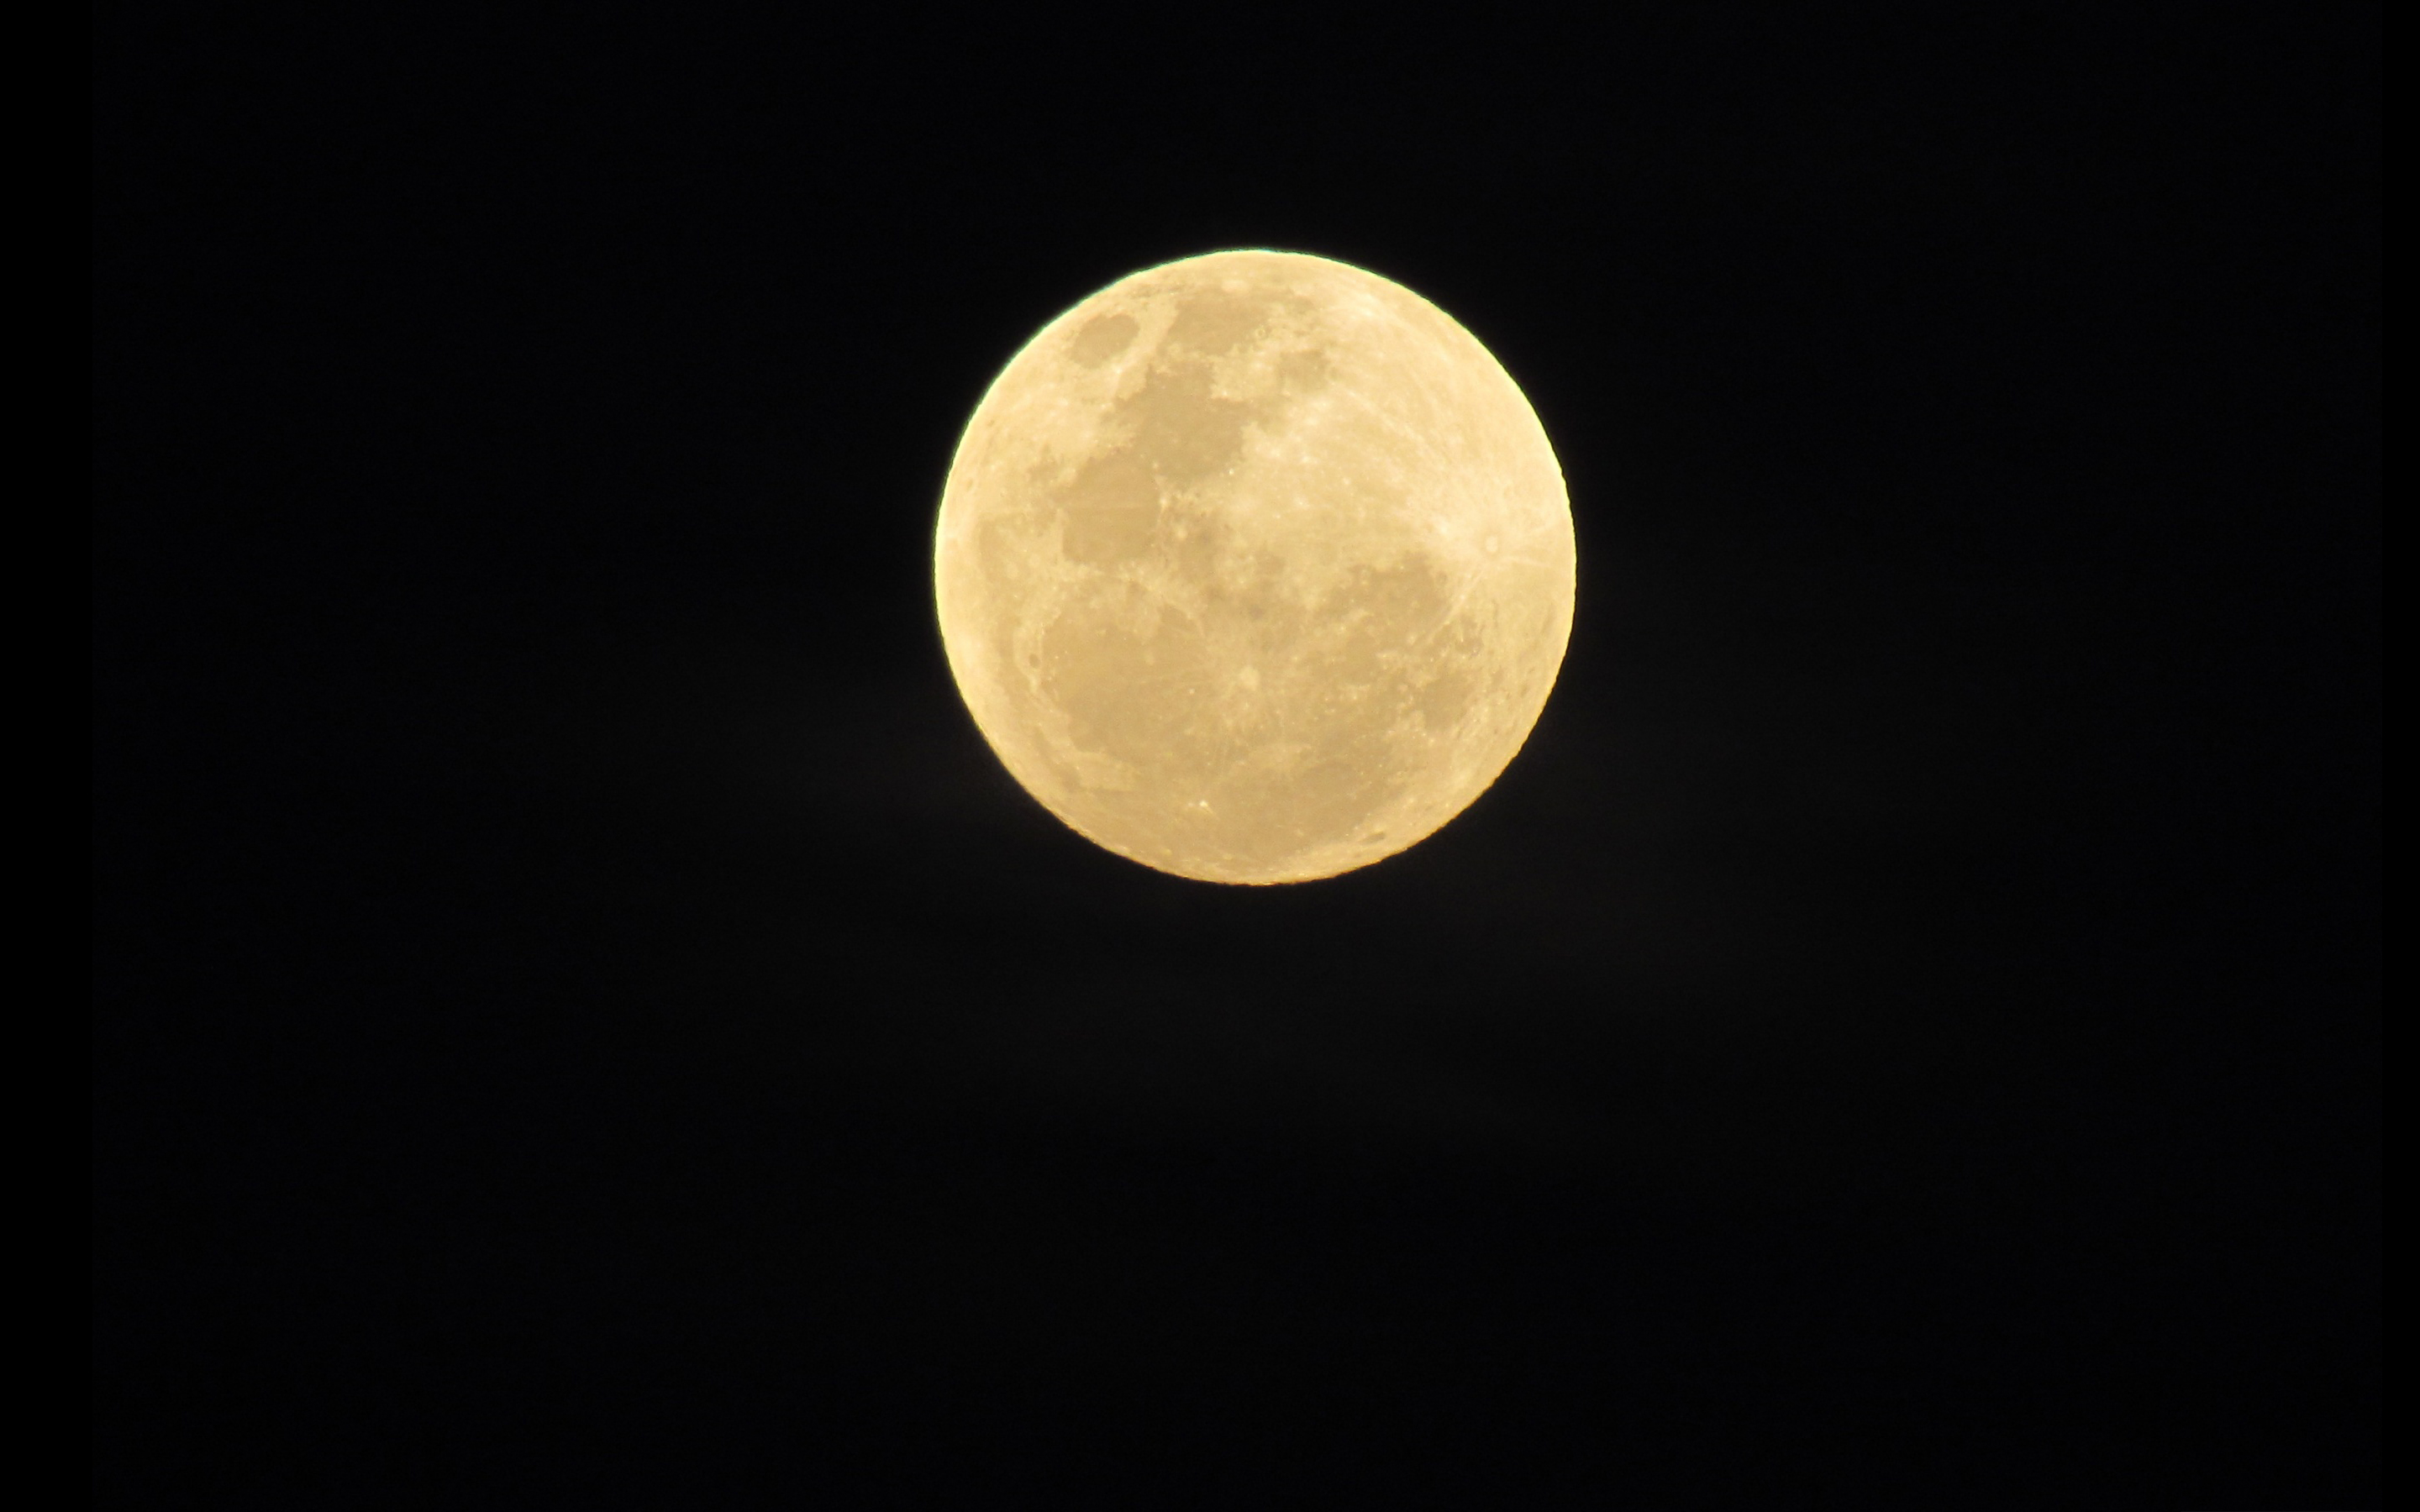 Full moon hd